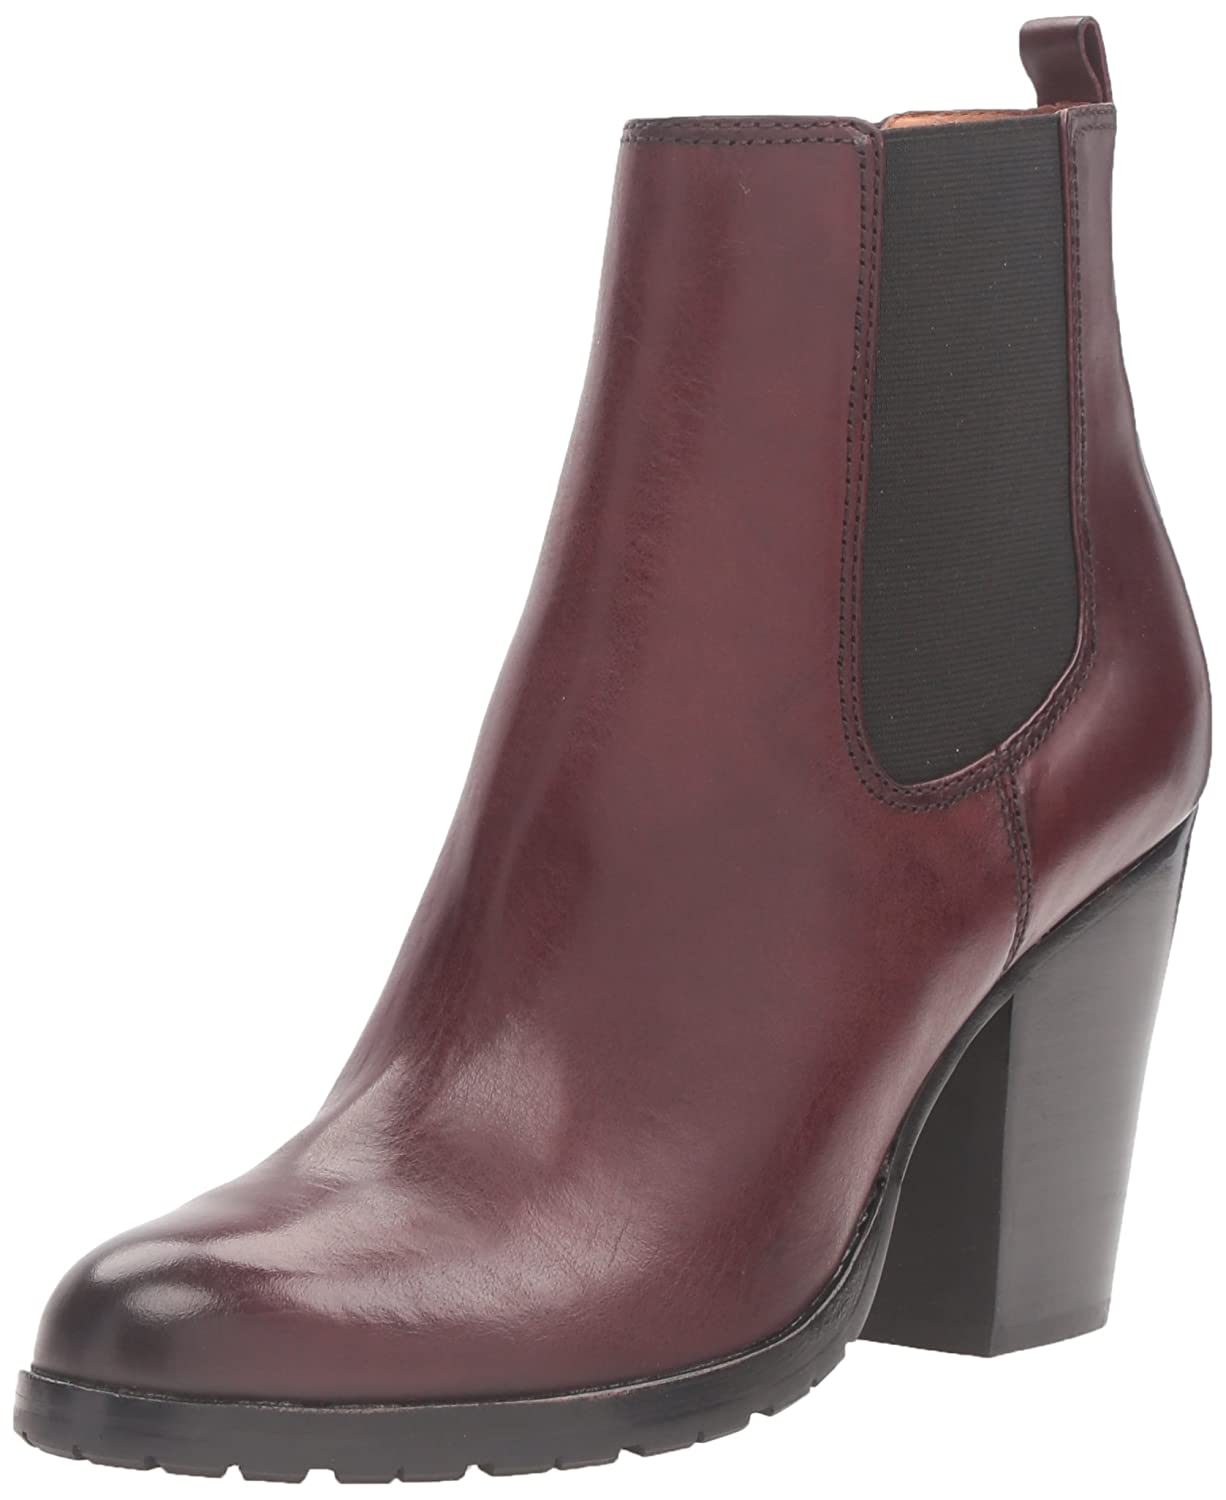 FRYE Women's Tate Chelsea US|Bordeaux Boot B019457HL6 8.5 B(M) US|Bordeaux Chelsea 28d076